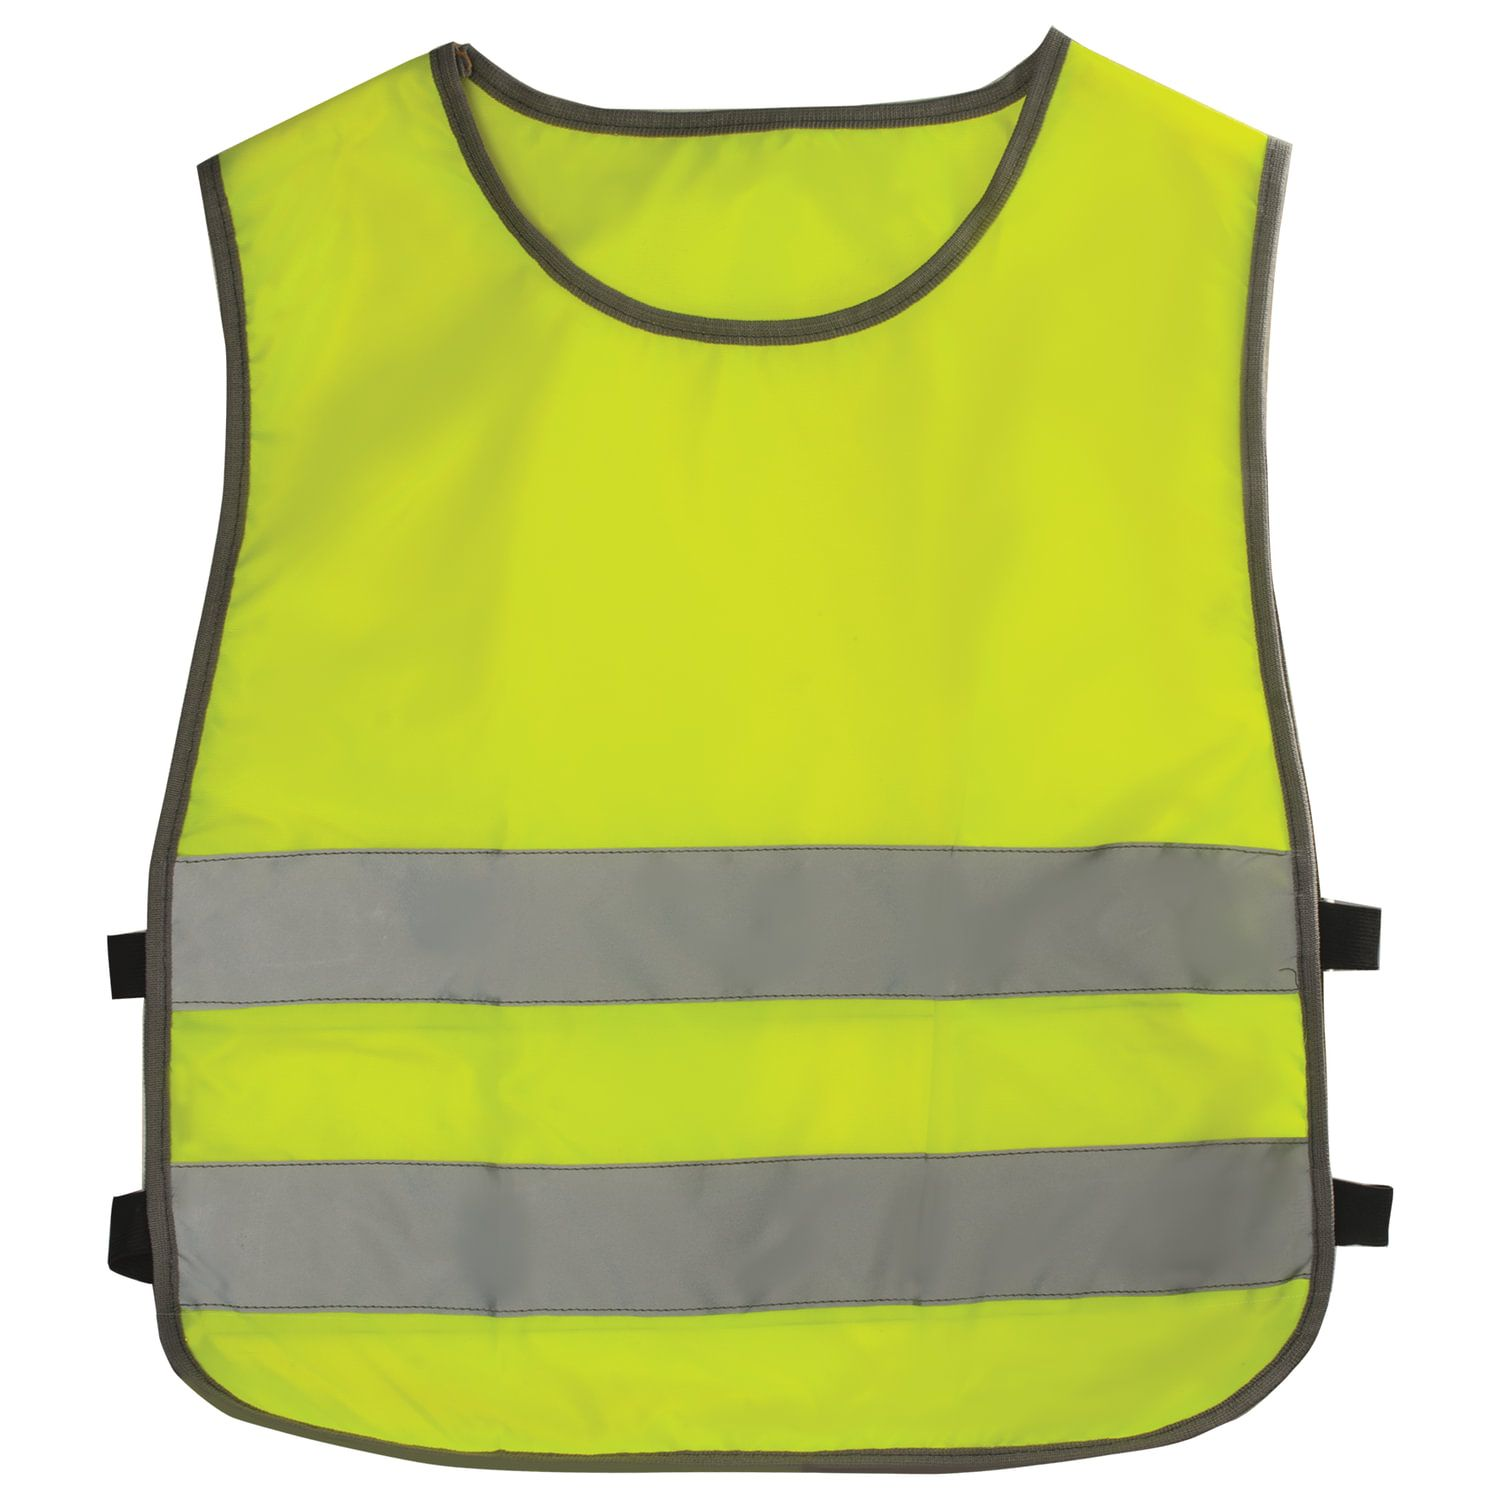 Children's vest REFLECTIVE, size 26-30, height 92-116 cm, 2-6 years old, bright green (lemon)